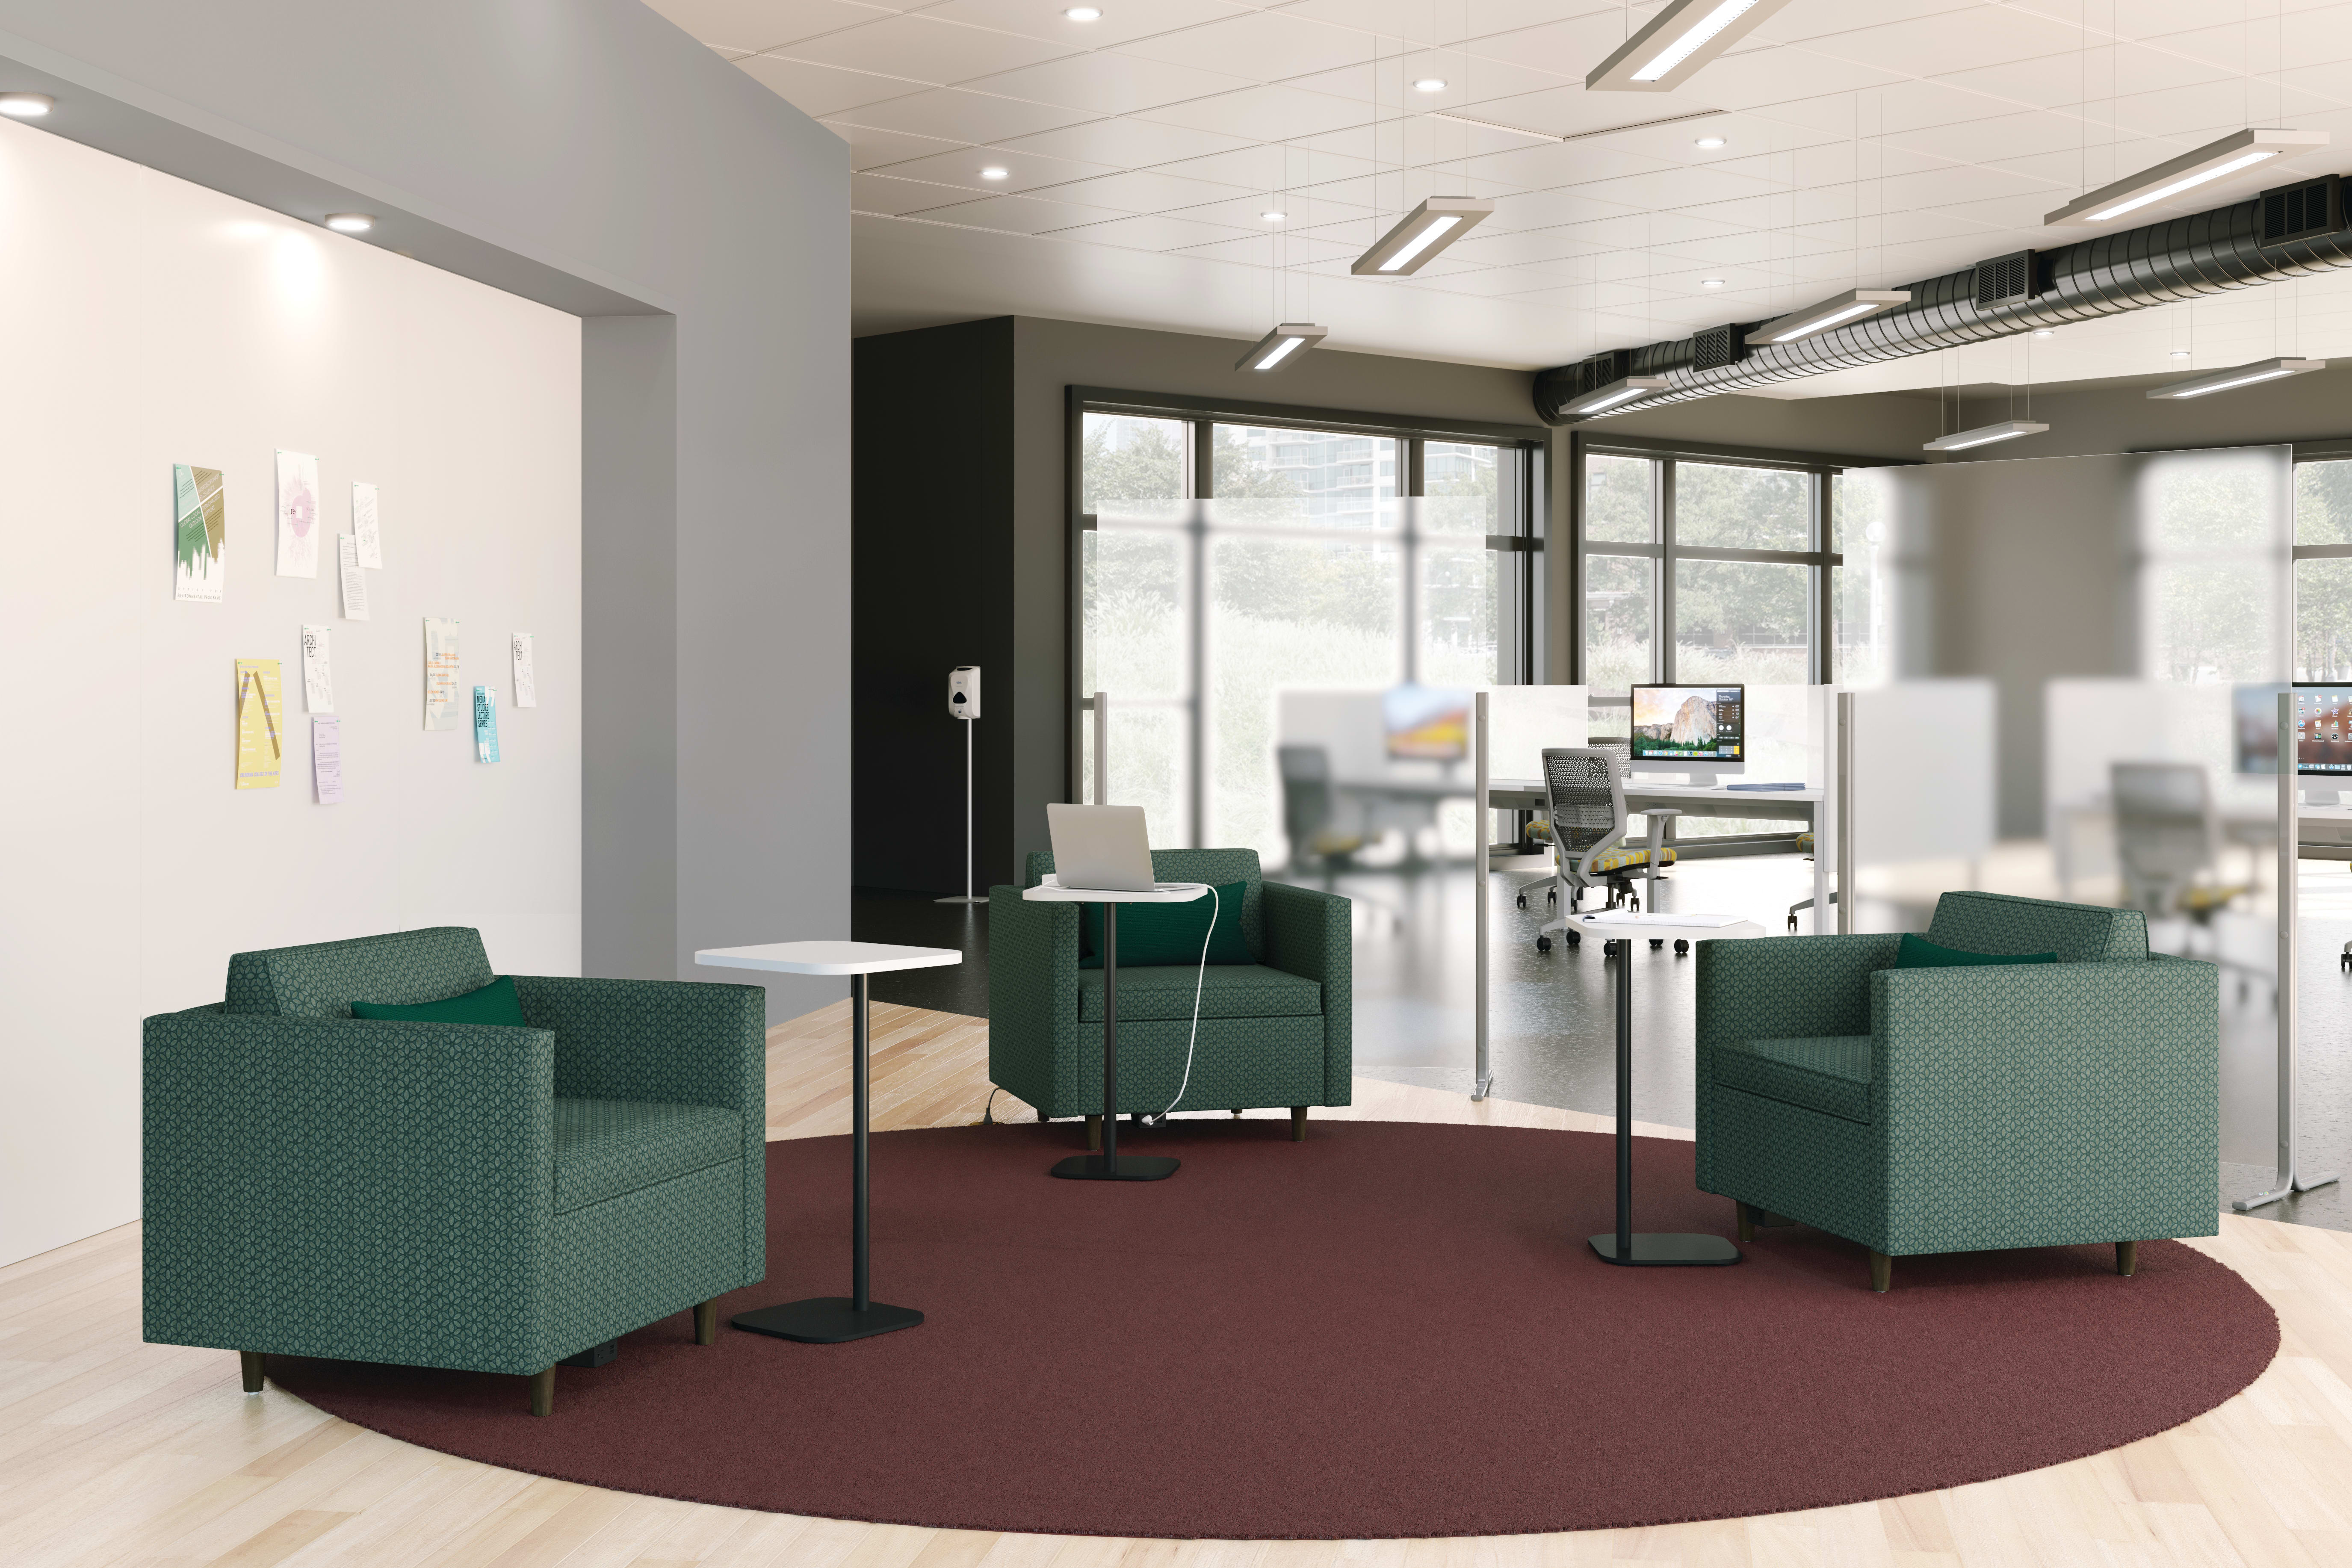 West Hill Lounge Seating with Birk Personal Tables and Floor Screens.